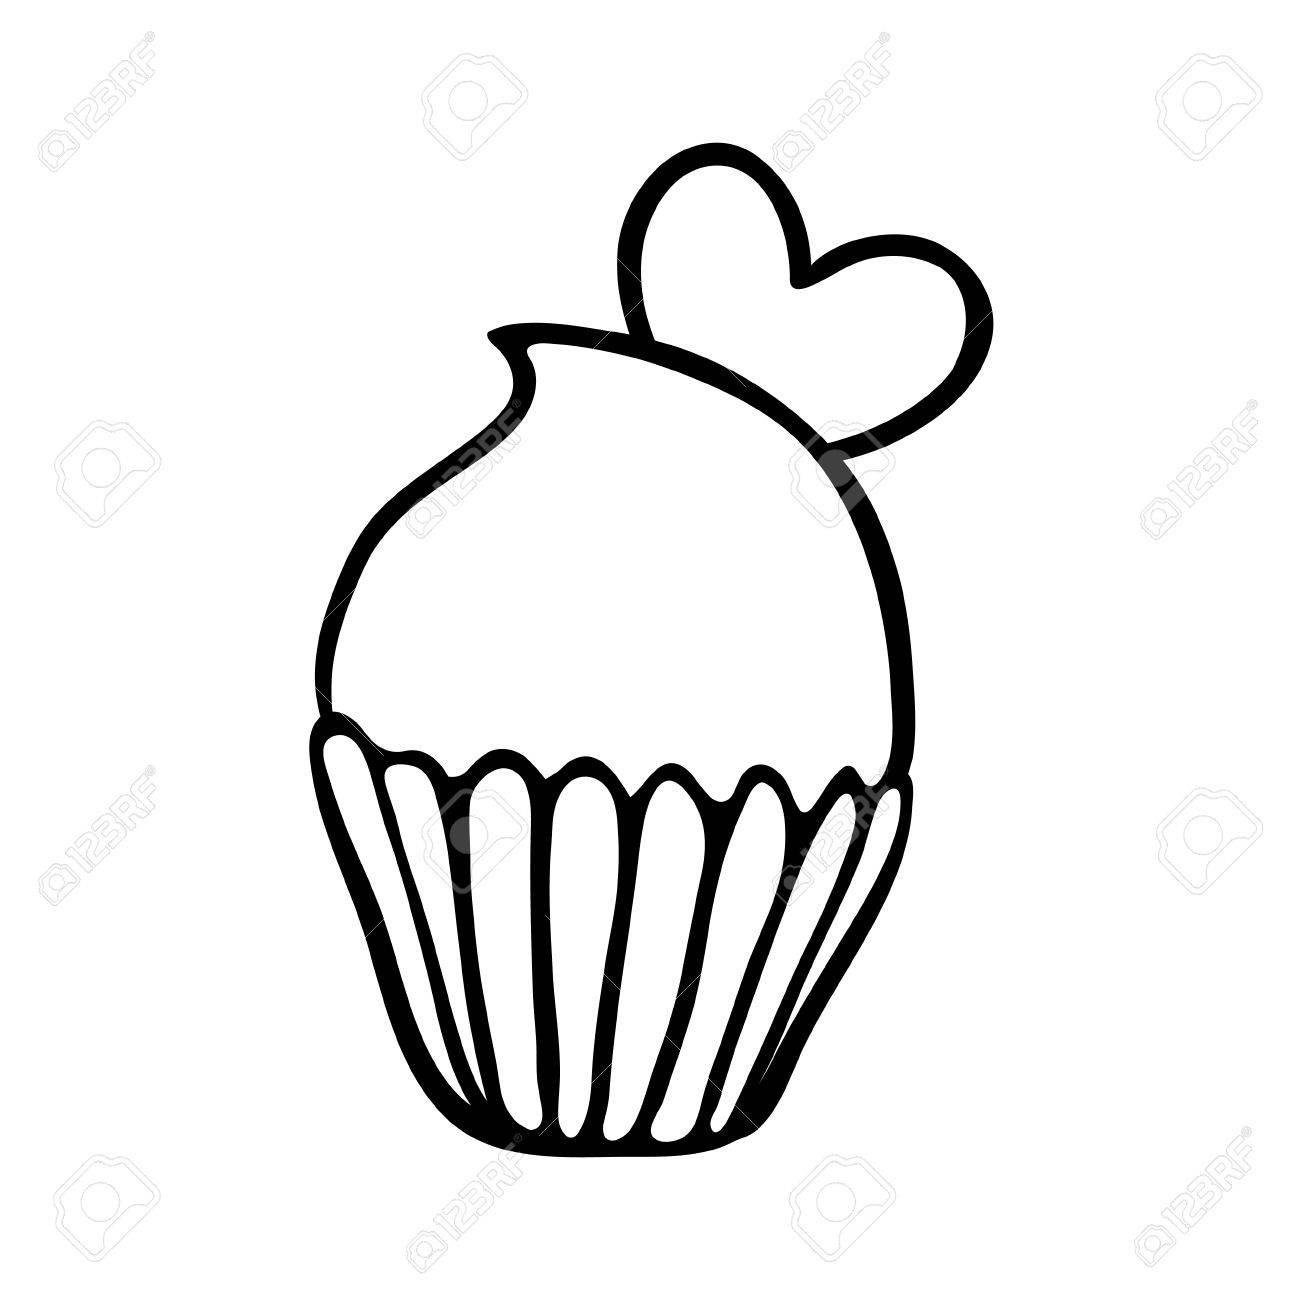 1300x1300 Valentine Cupcake Decorated With One Heart. Hand Drawn Sketch